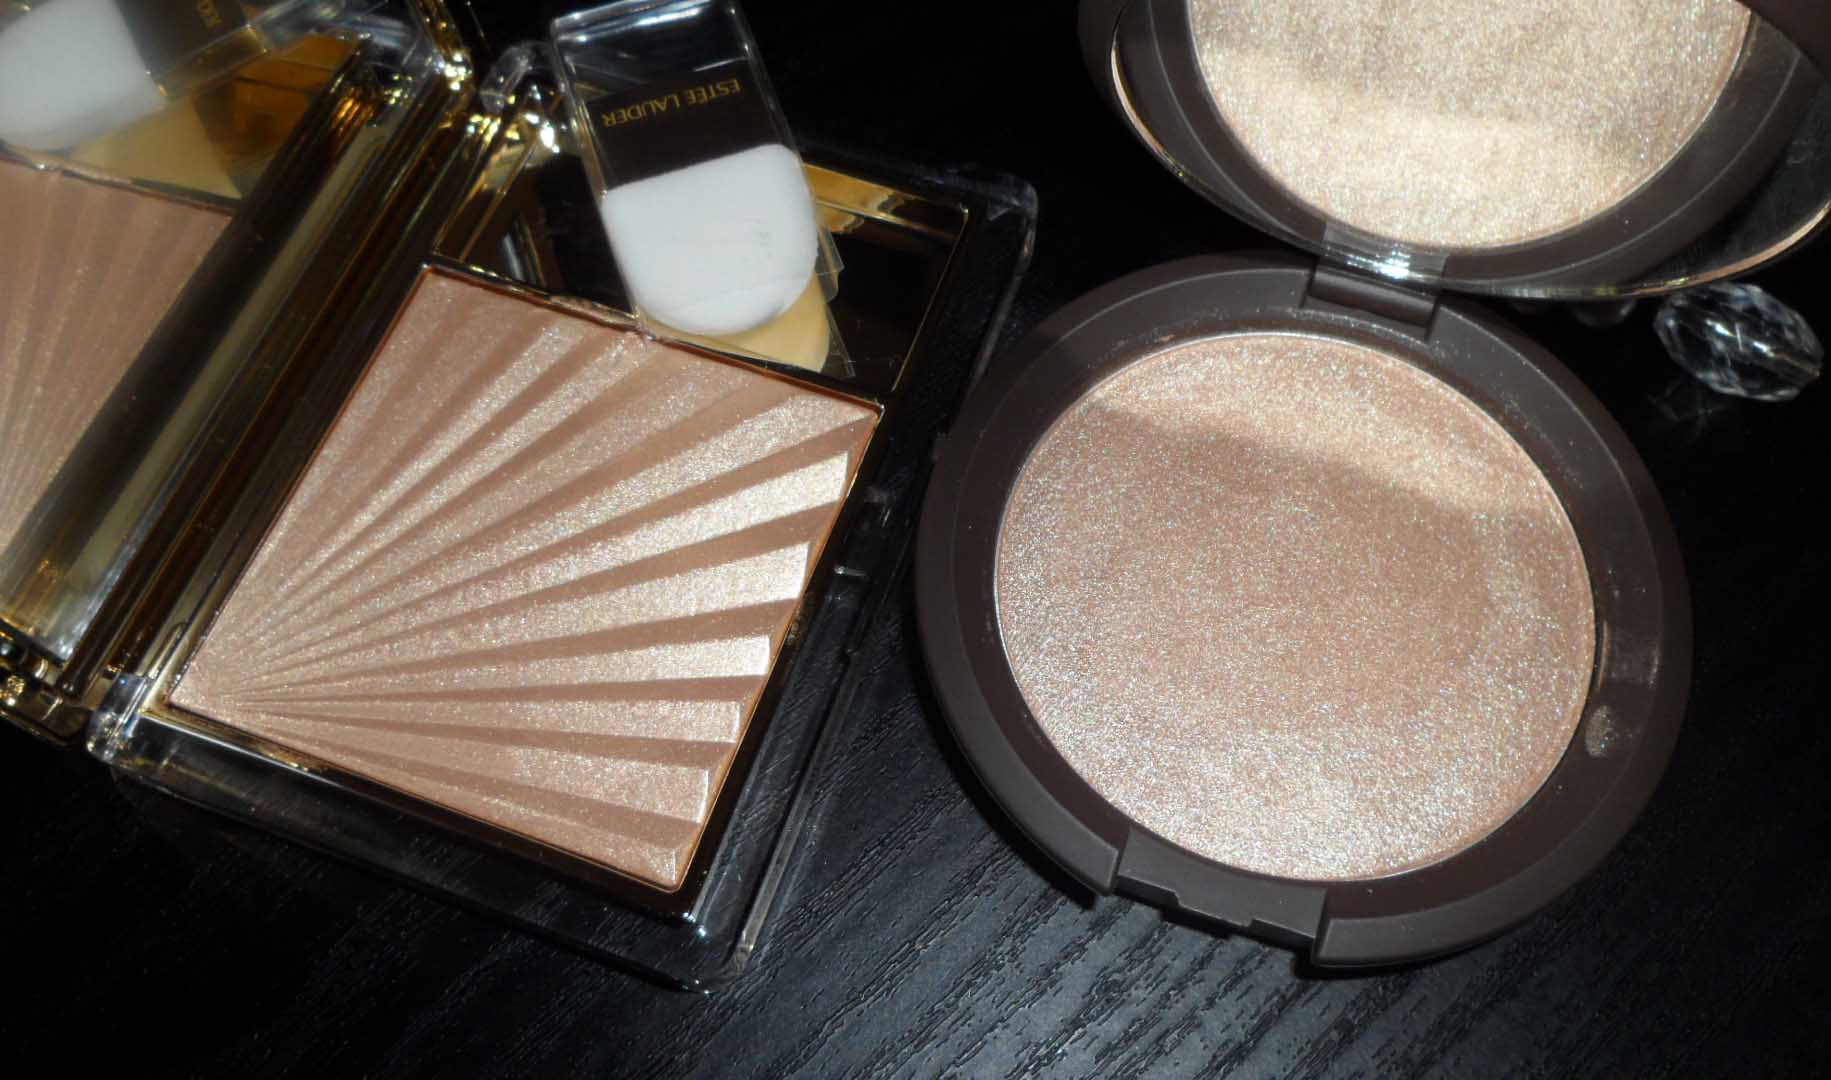 Estee Lauder Heat Wave and BECCA Shimmering Skin Perfector